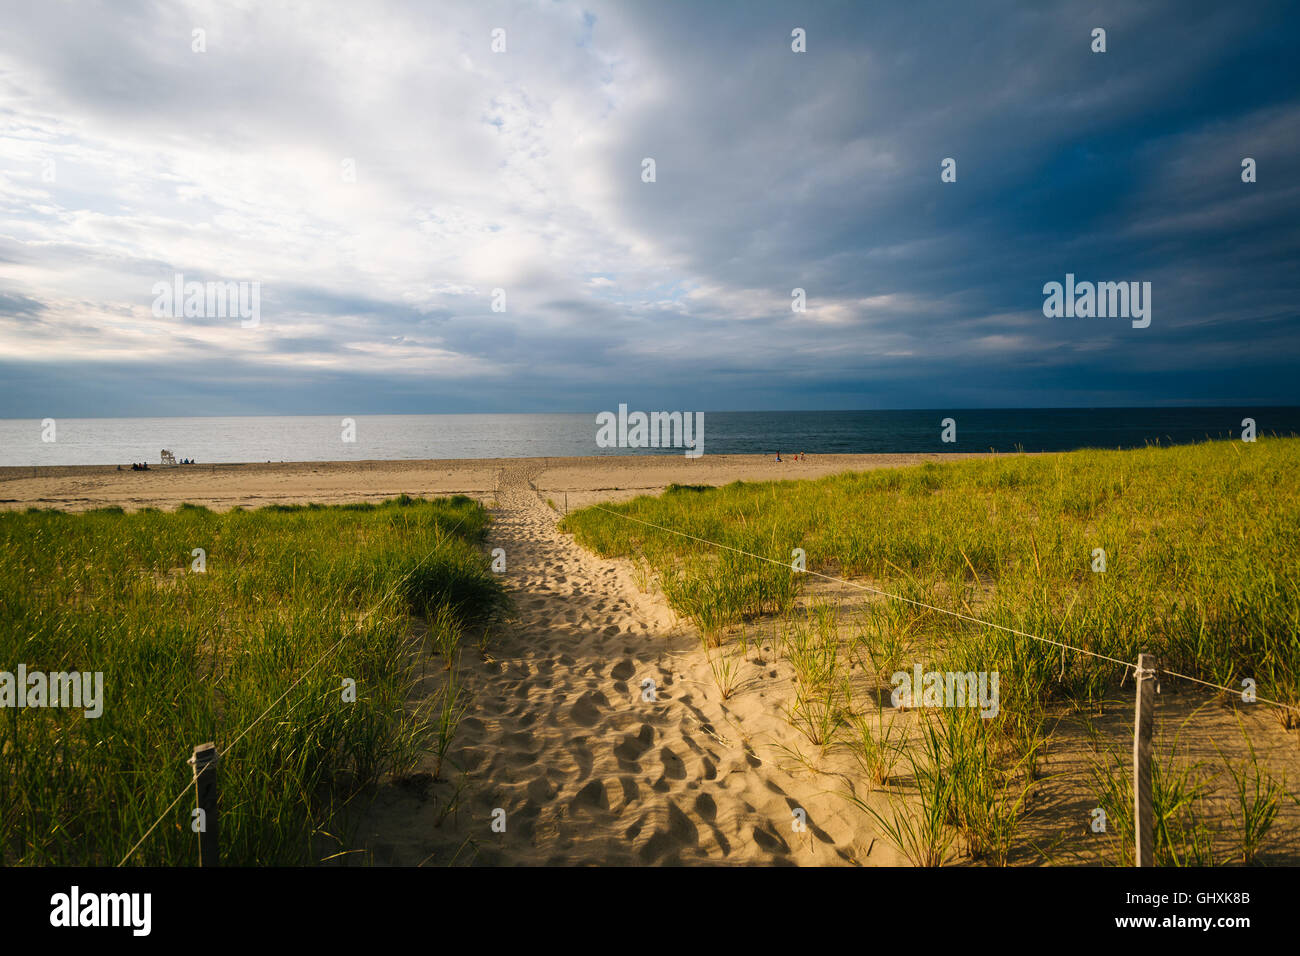 Grasses and path over sand dunes at Race Point, in the Province Lands at Cape Cod National Seashore, Massachusetts. - Stock Image